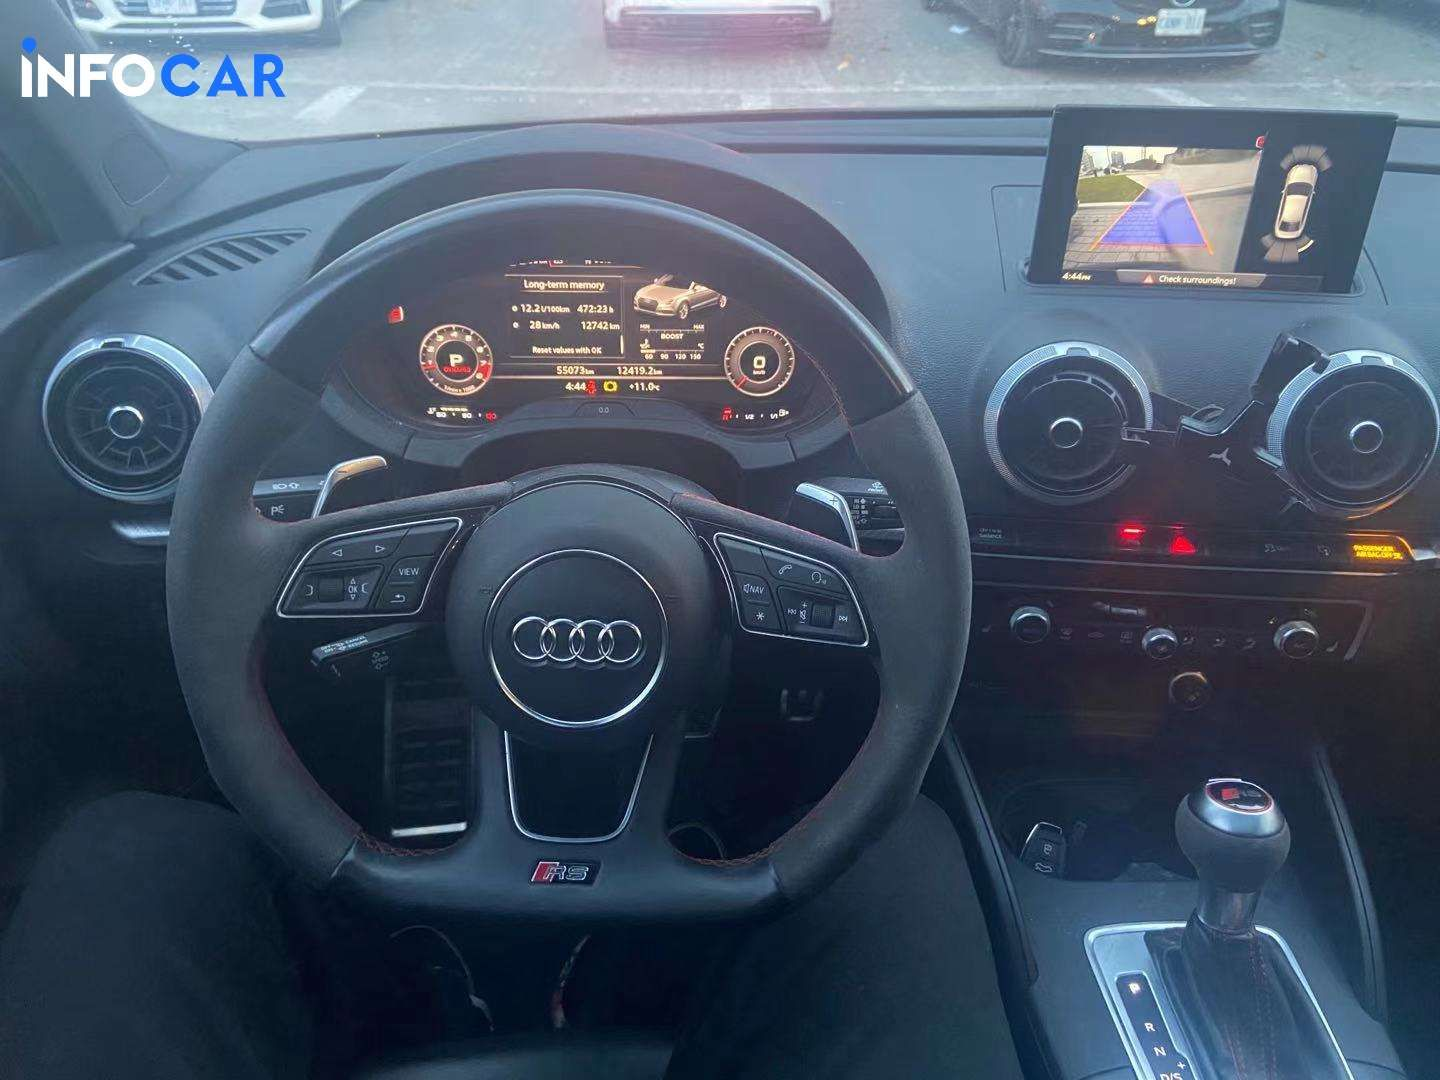 2018 Audi RS 3  - INFOCAR - Toronto's Most Comprehensive New and Used Auto Trading Platform